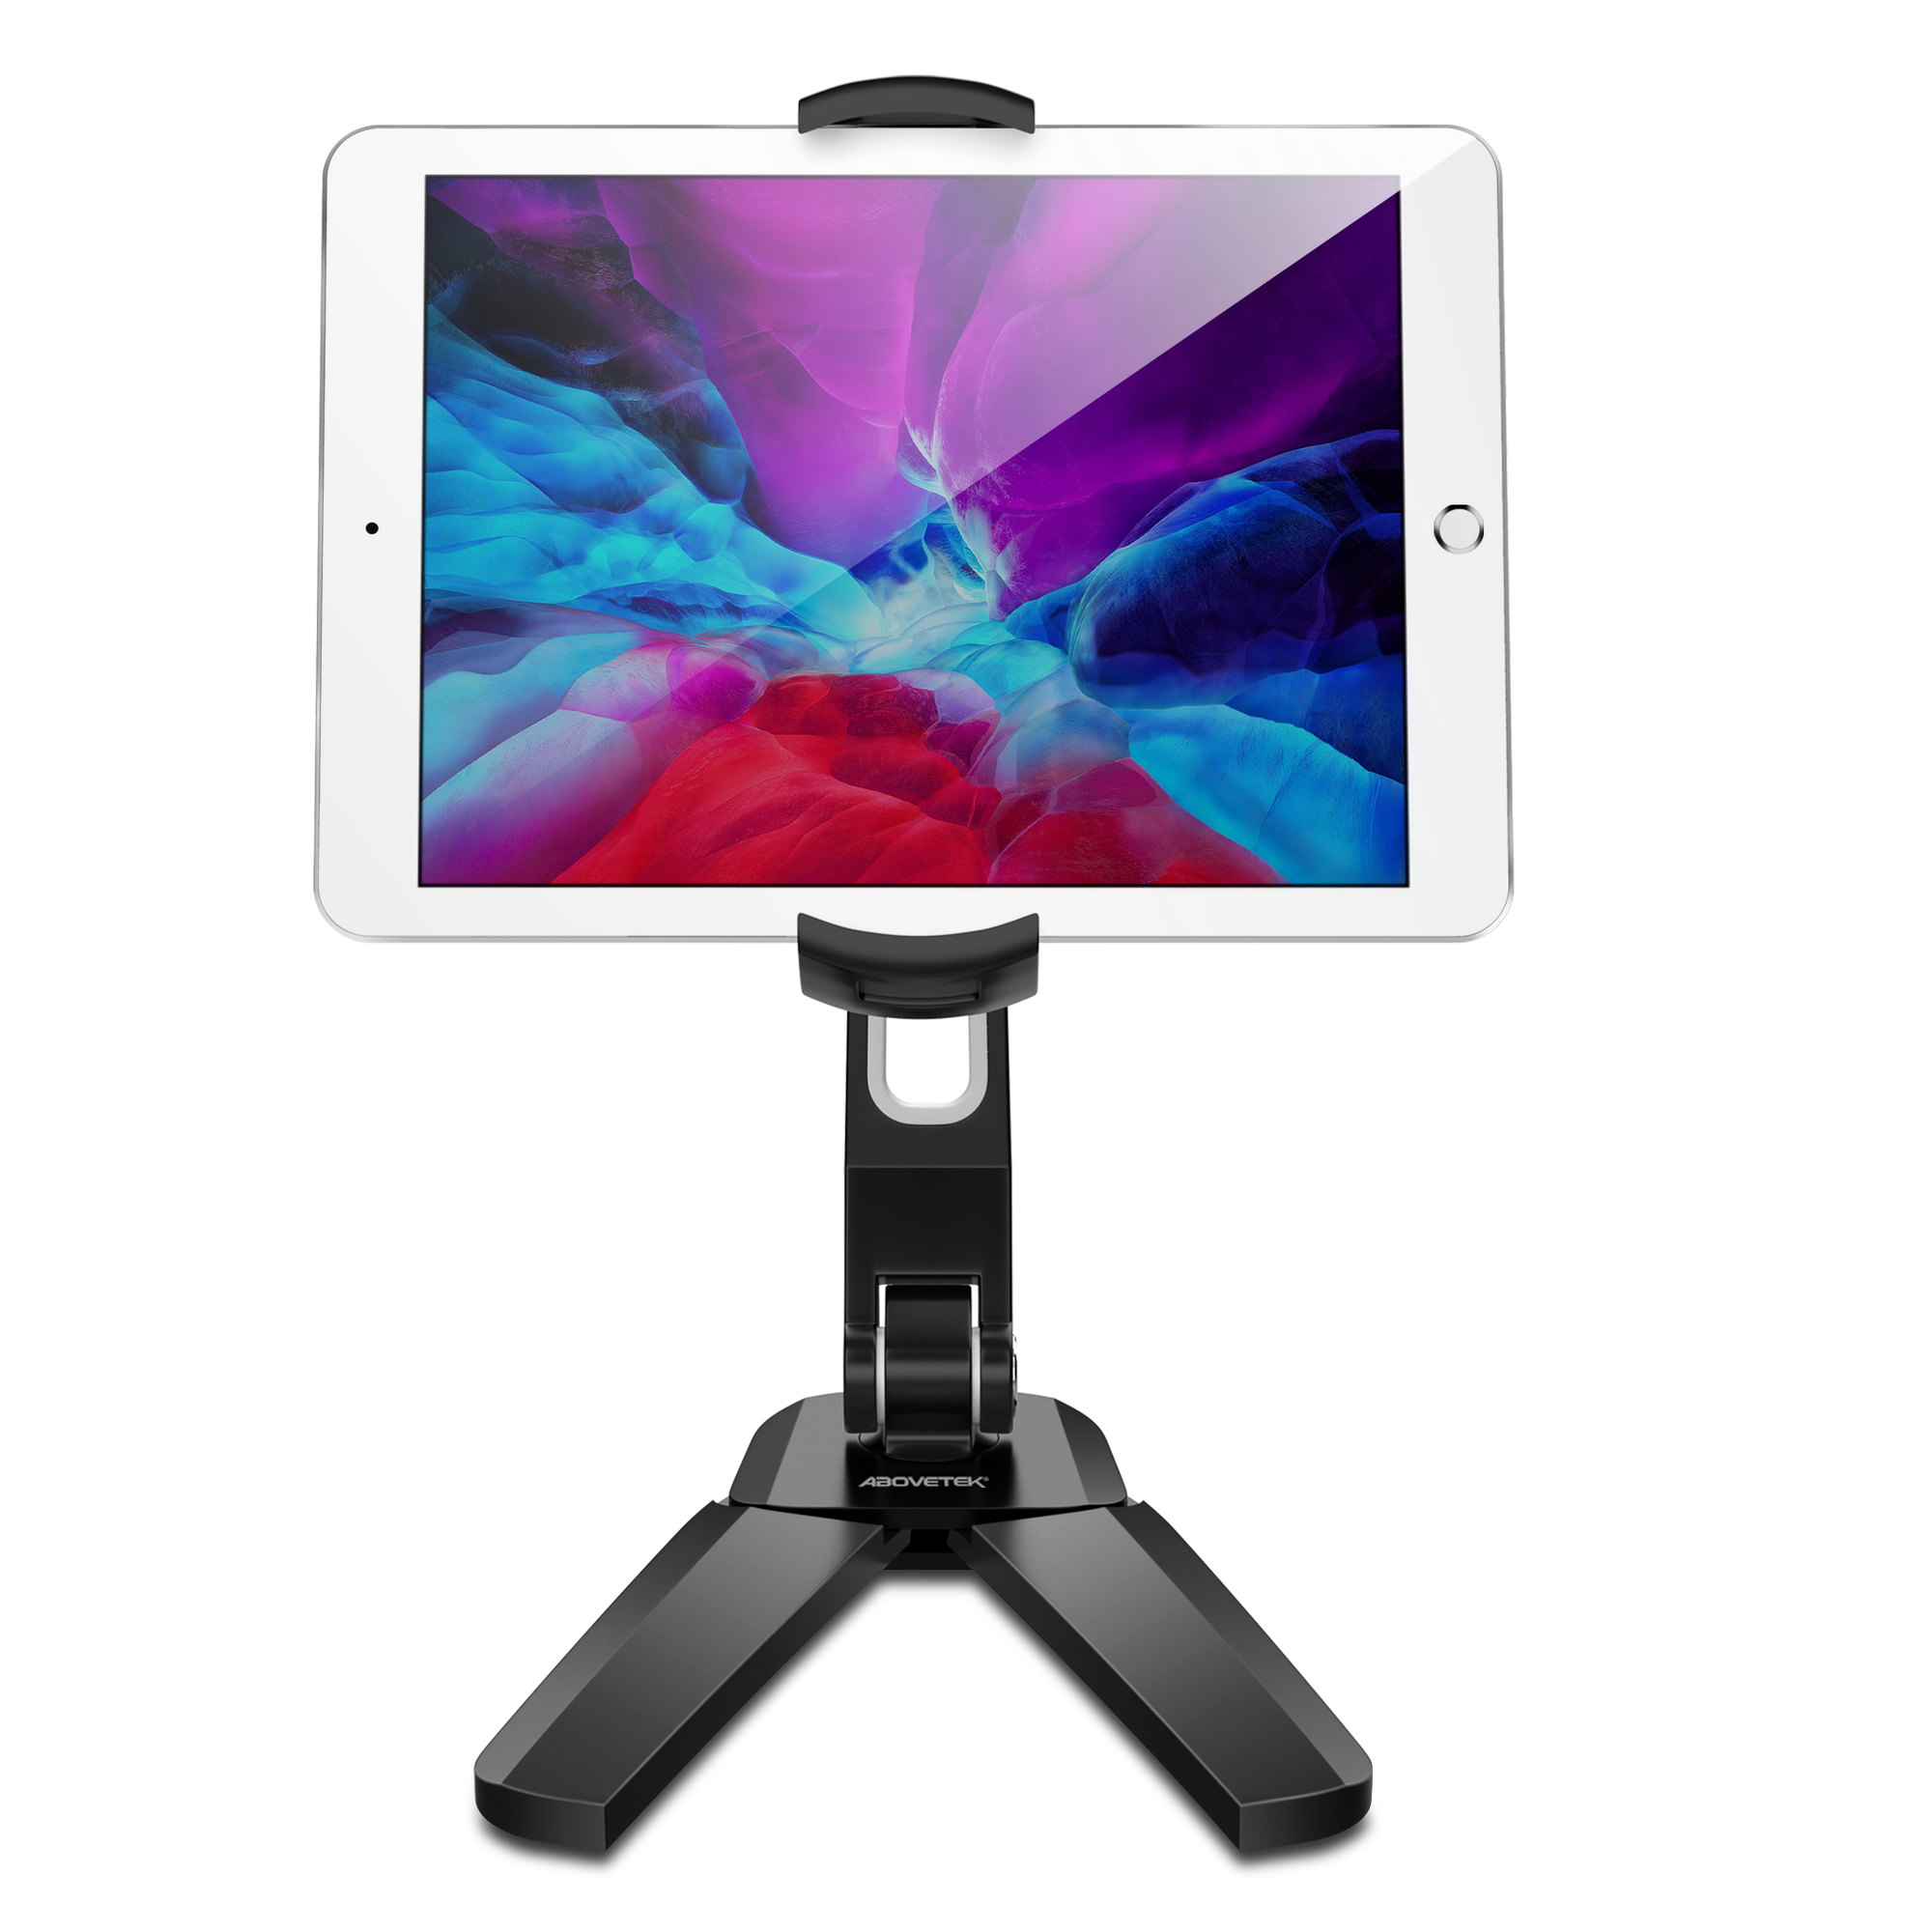 HIGHFlex 360 Tablet Stand (TS-396B)